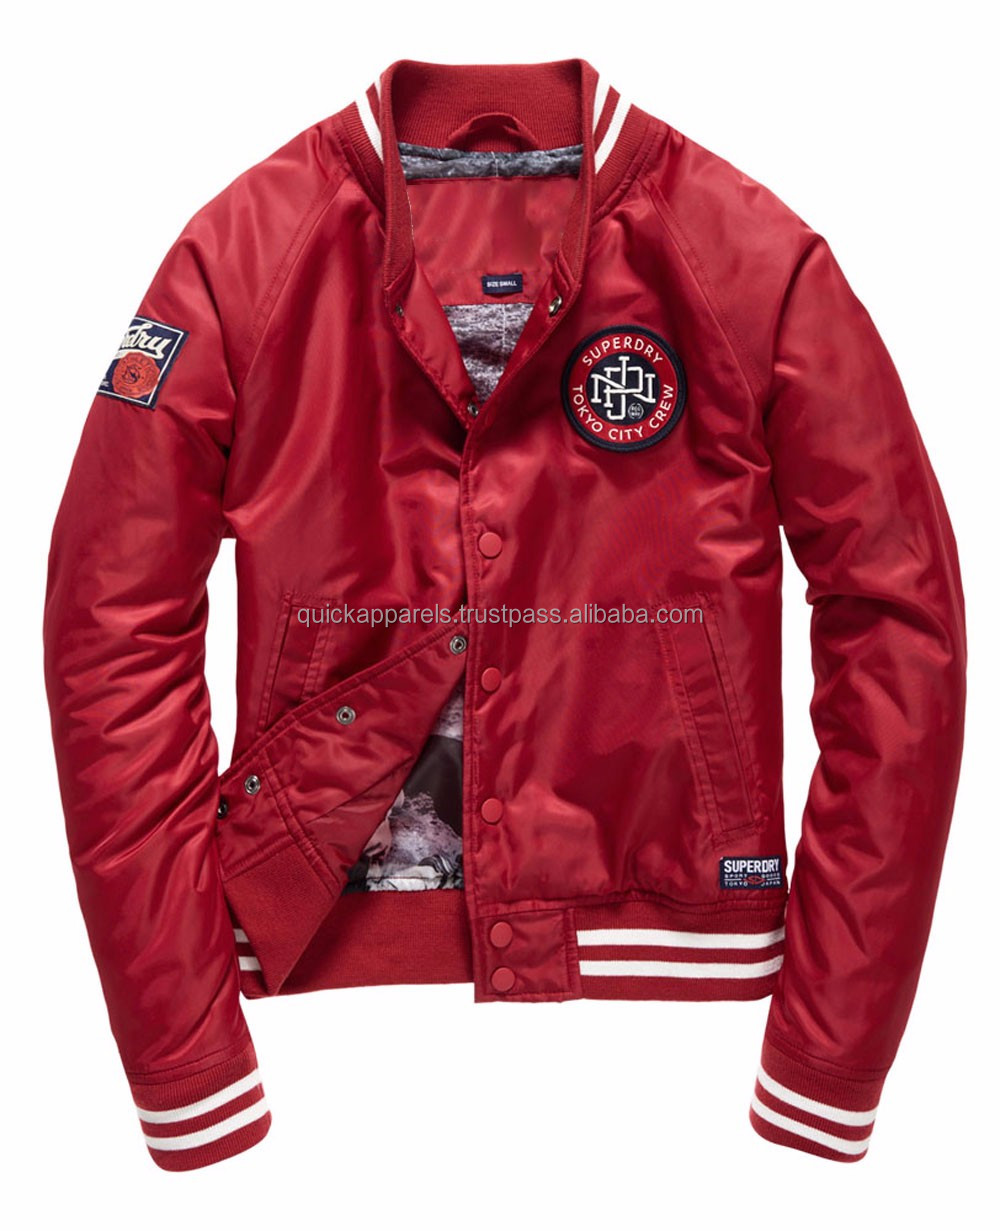 Custom Satin Varsity Jacket / Wholesale Blank Varsity Jackets / Cheap letterman jacket baseball jacket